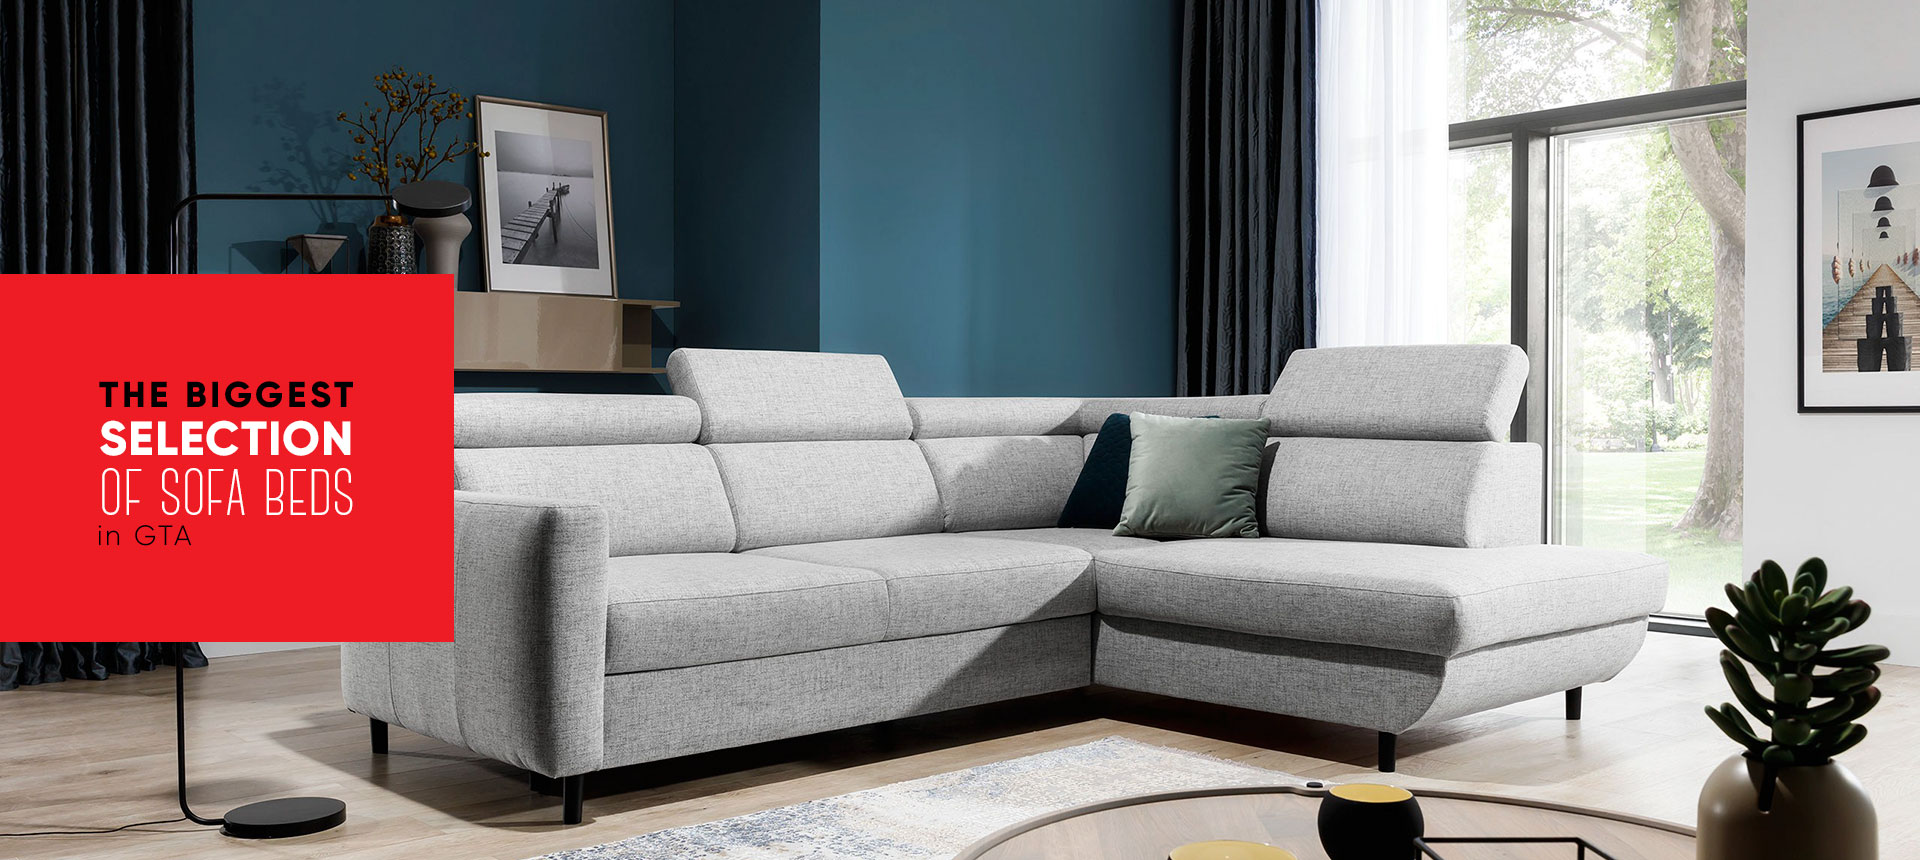 The biggest selection of sofa beds in GTA - Online store Smart Furniture Mississauga